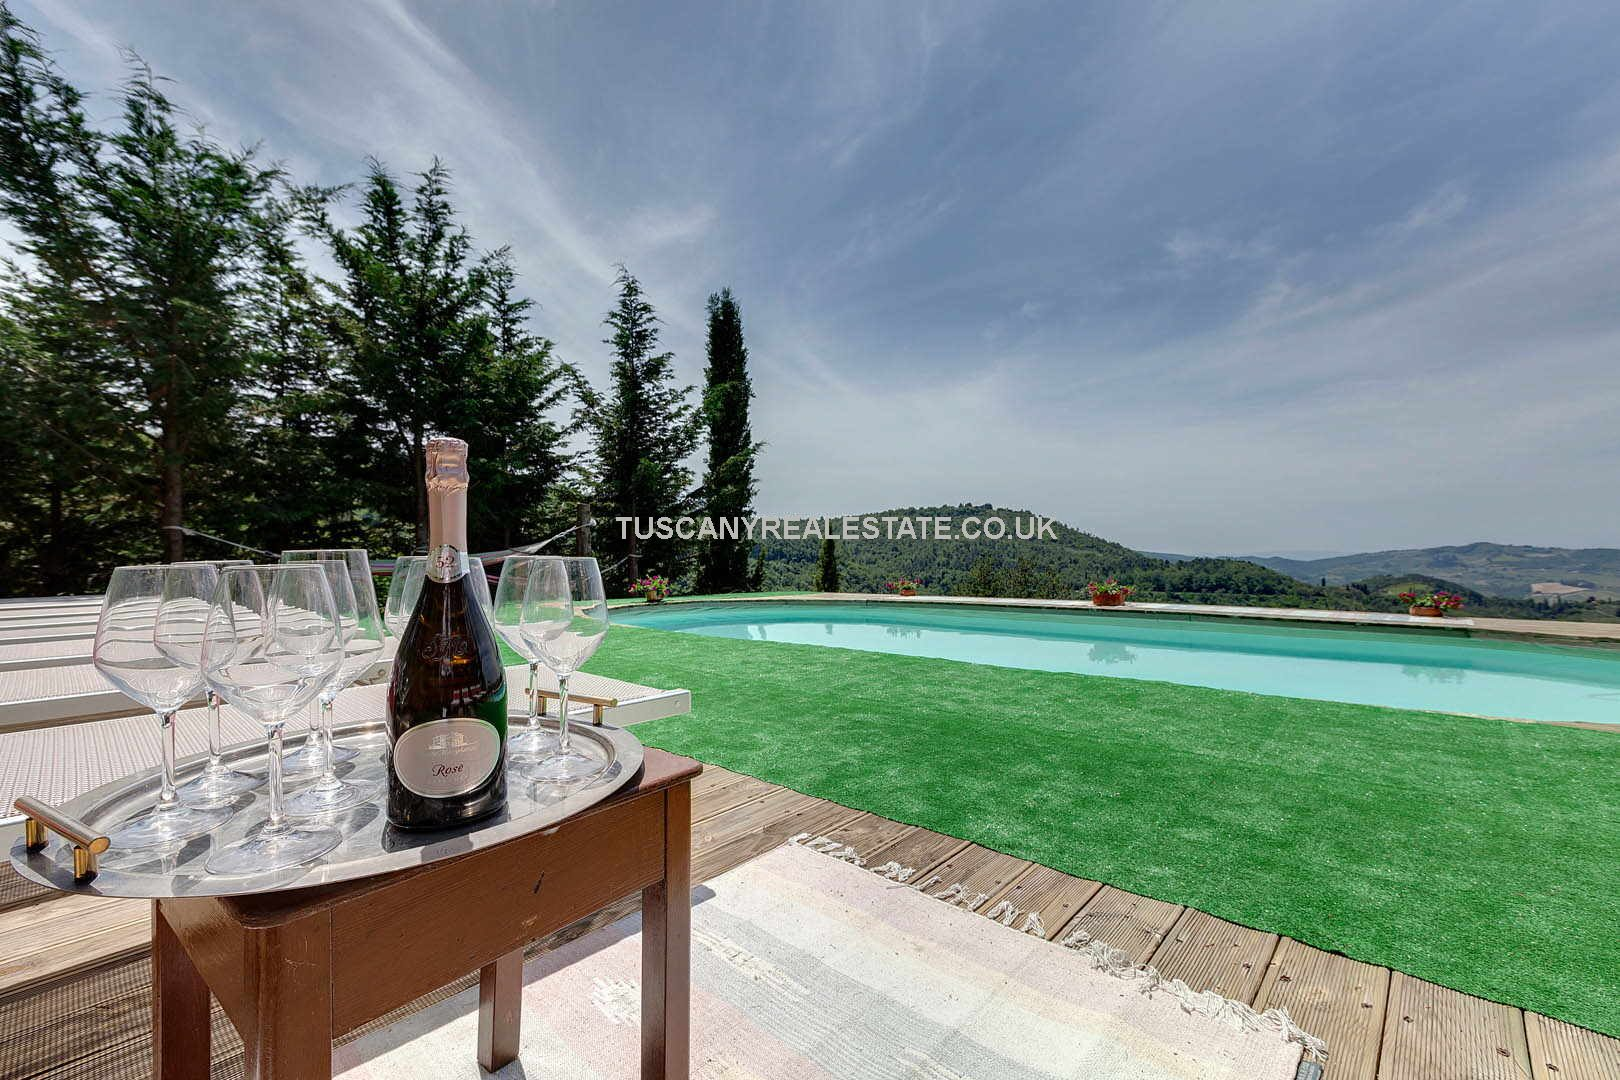 Tuscany villas with pools for sale